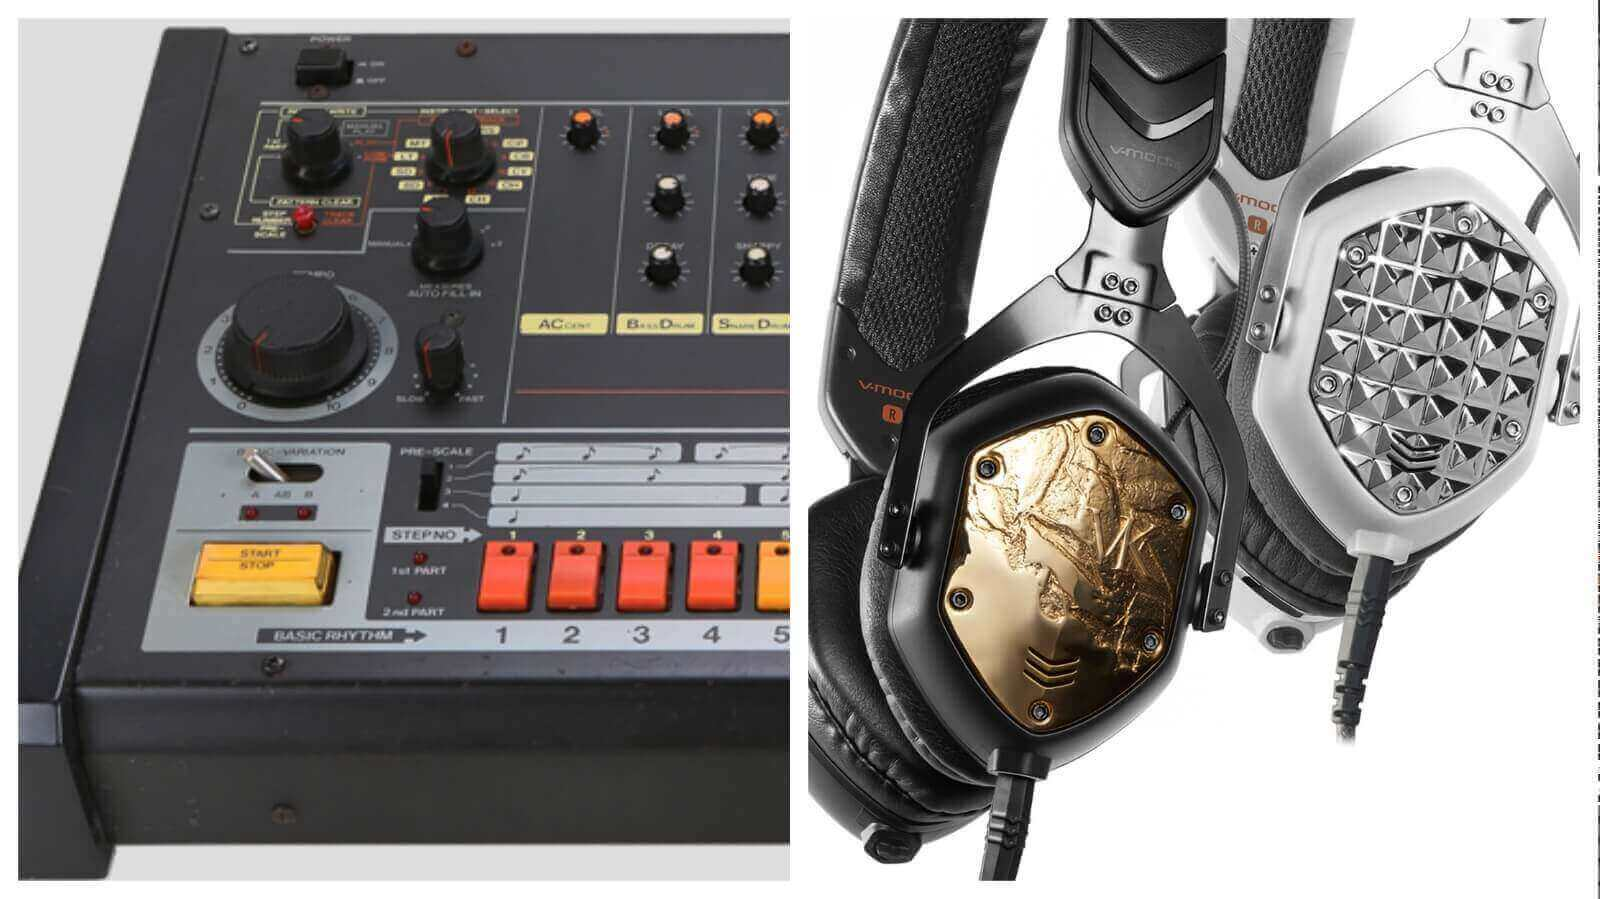 Roland and V-Moda: An Unusual Partnership (And Some 3D Printing) | All3DP